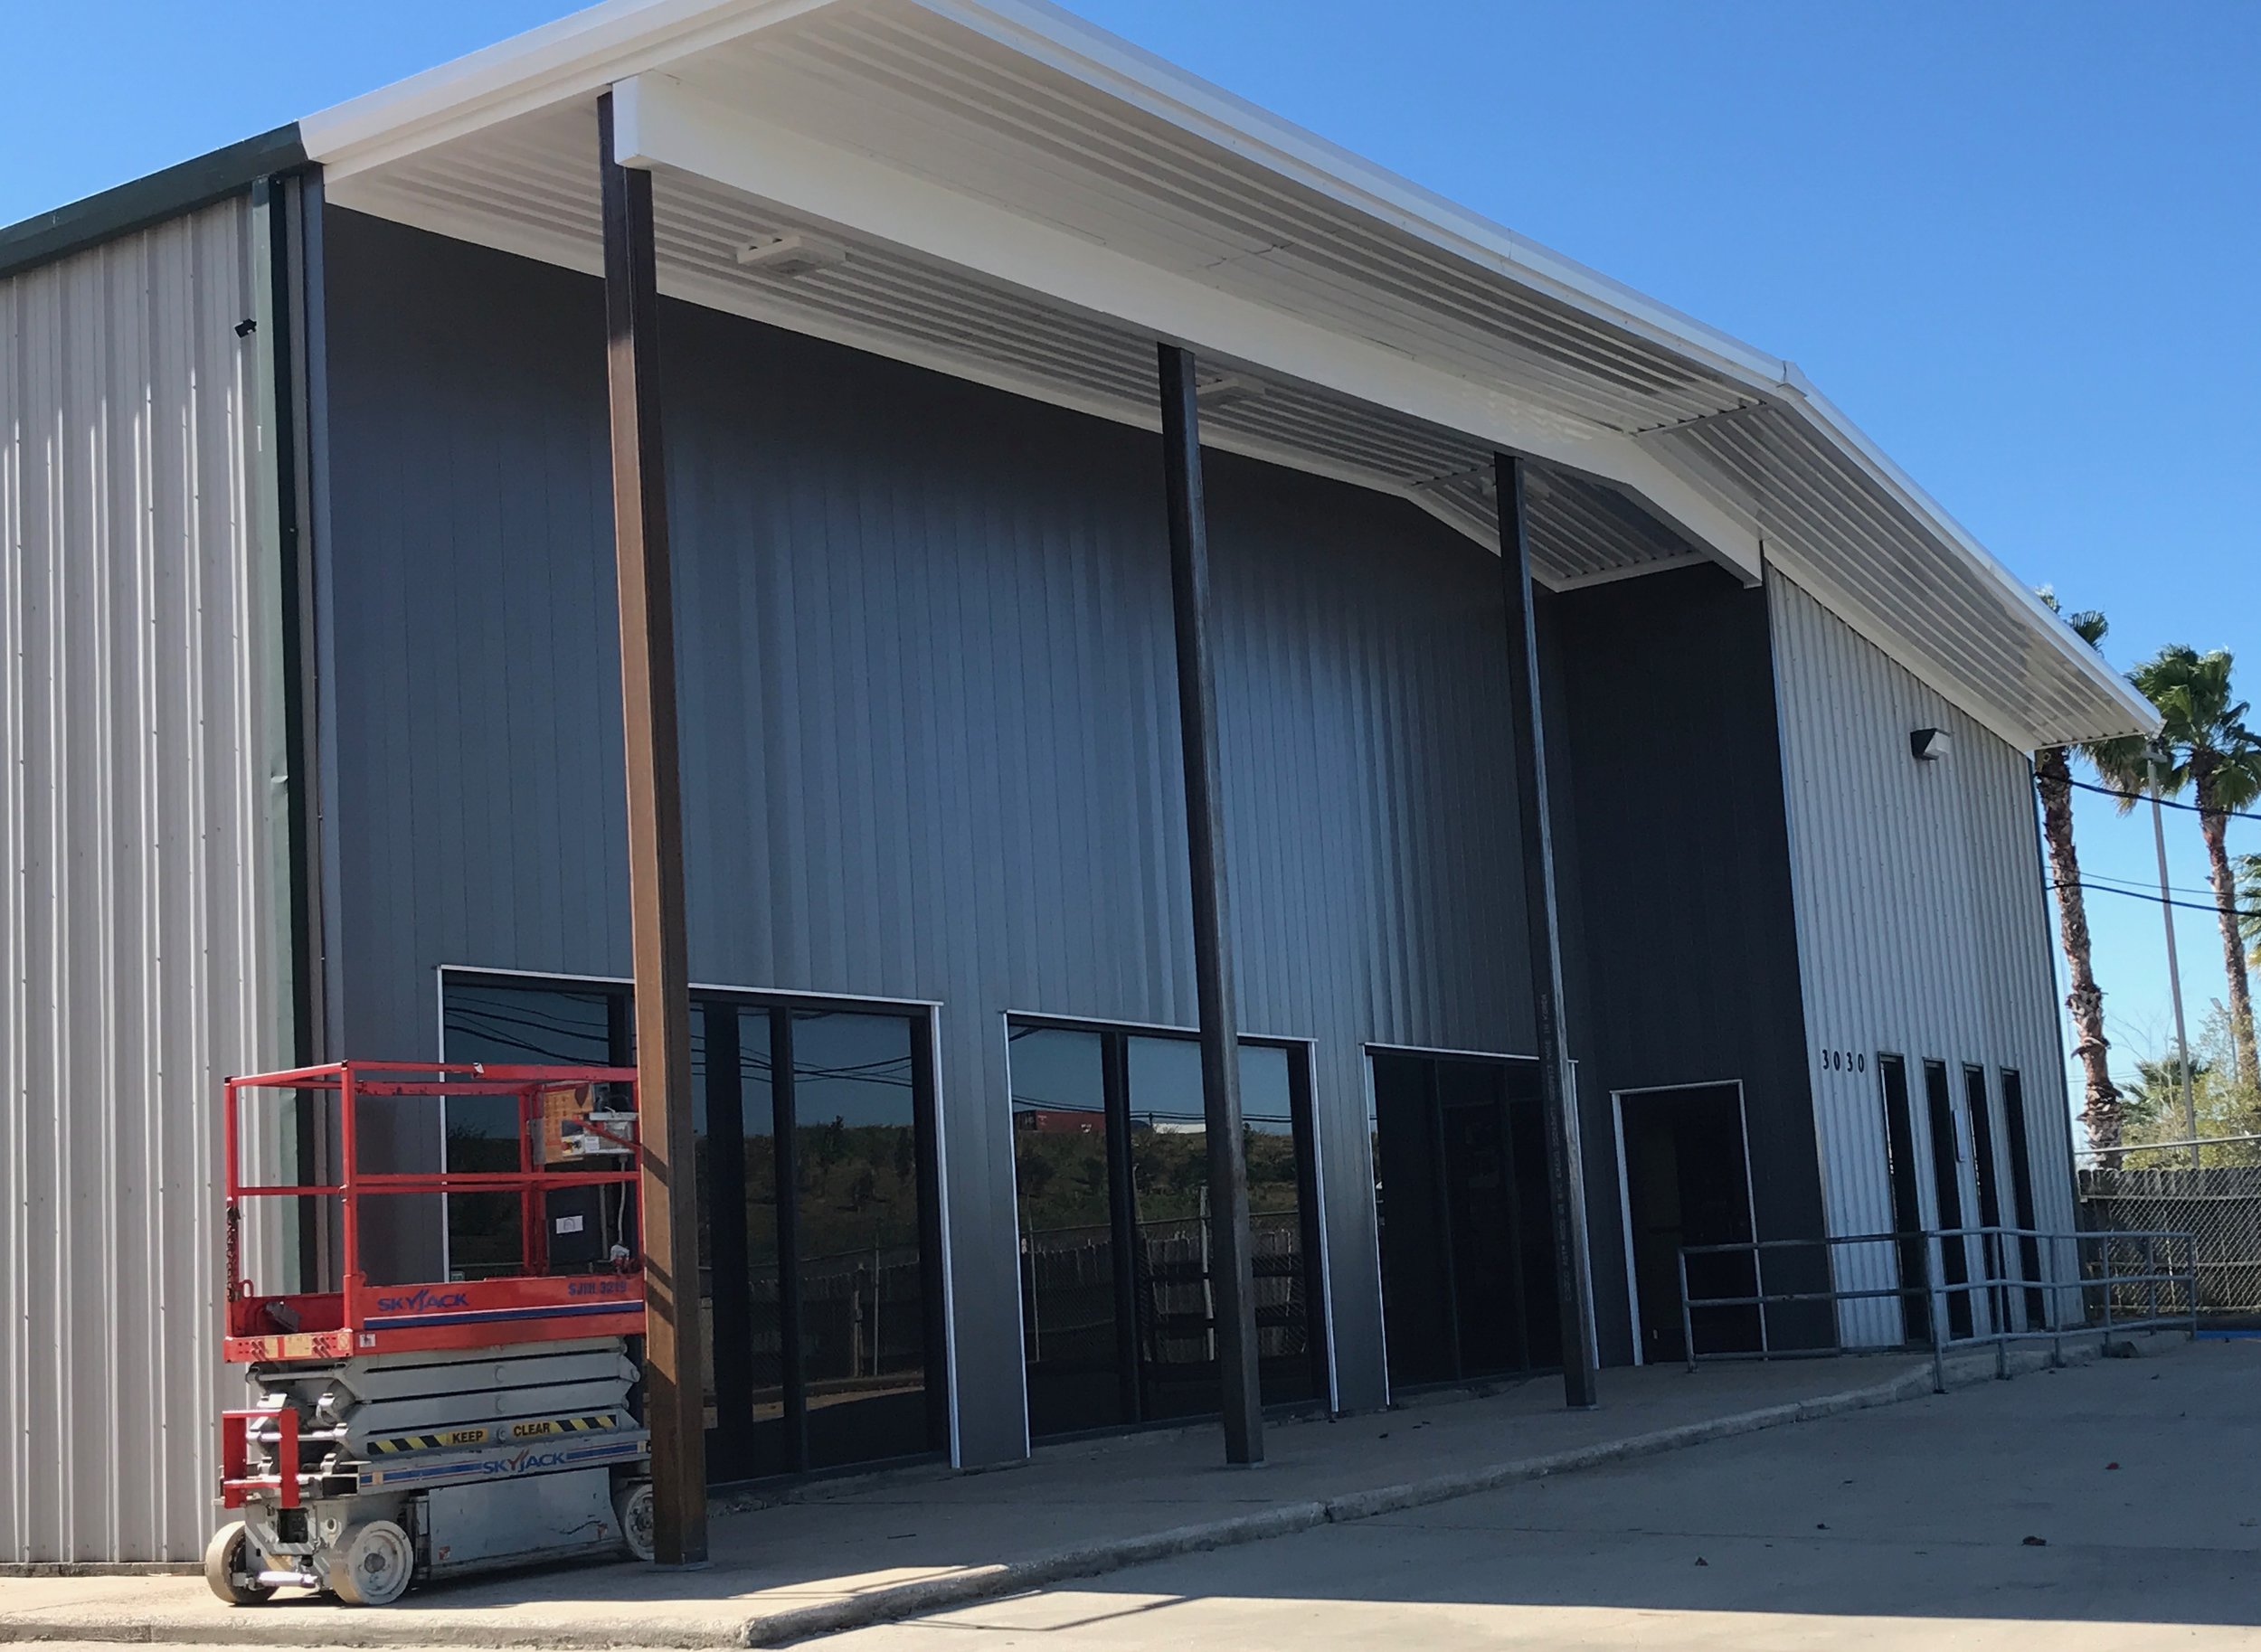 At completion, we used a hidden fastener panel system on the new panels on the front wall. I gives an industrial metal building the finished look of a commercial building.